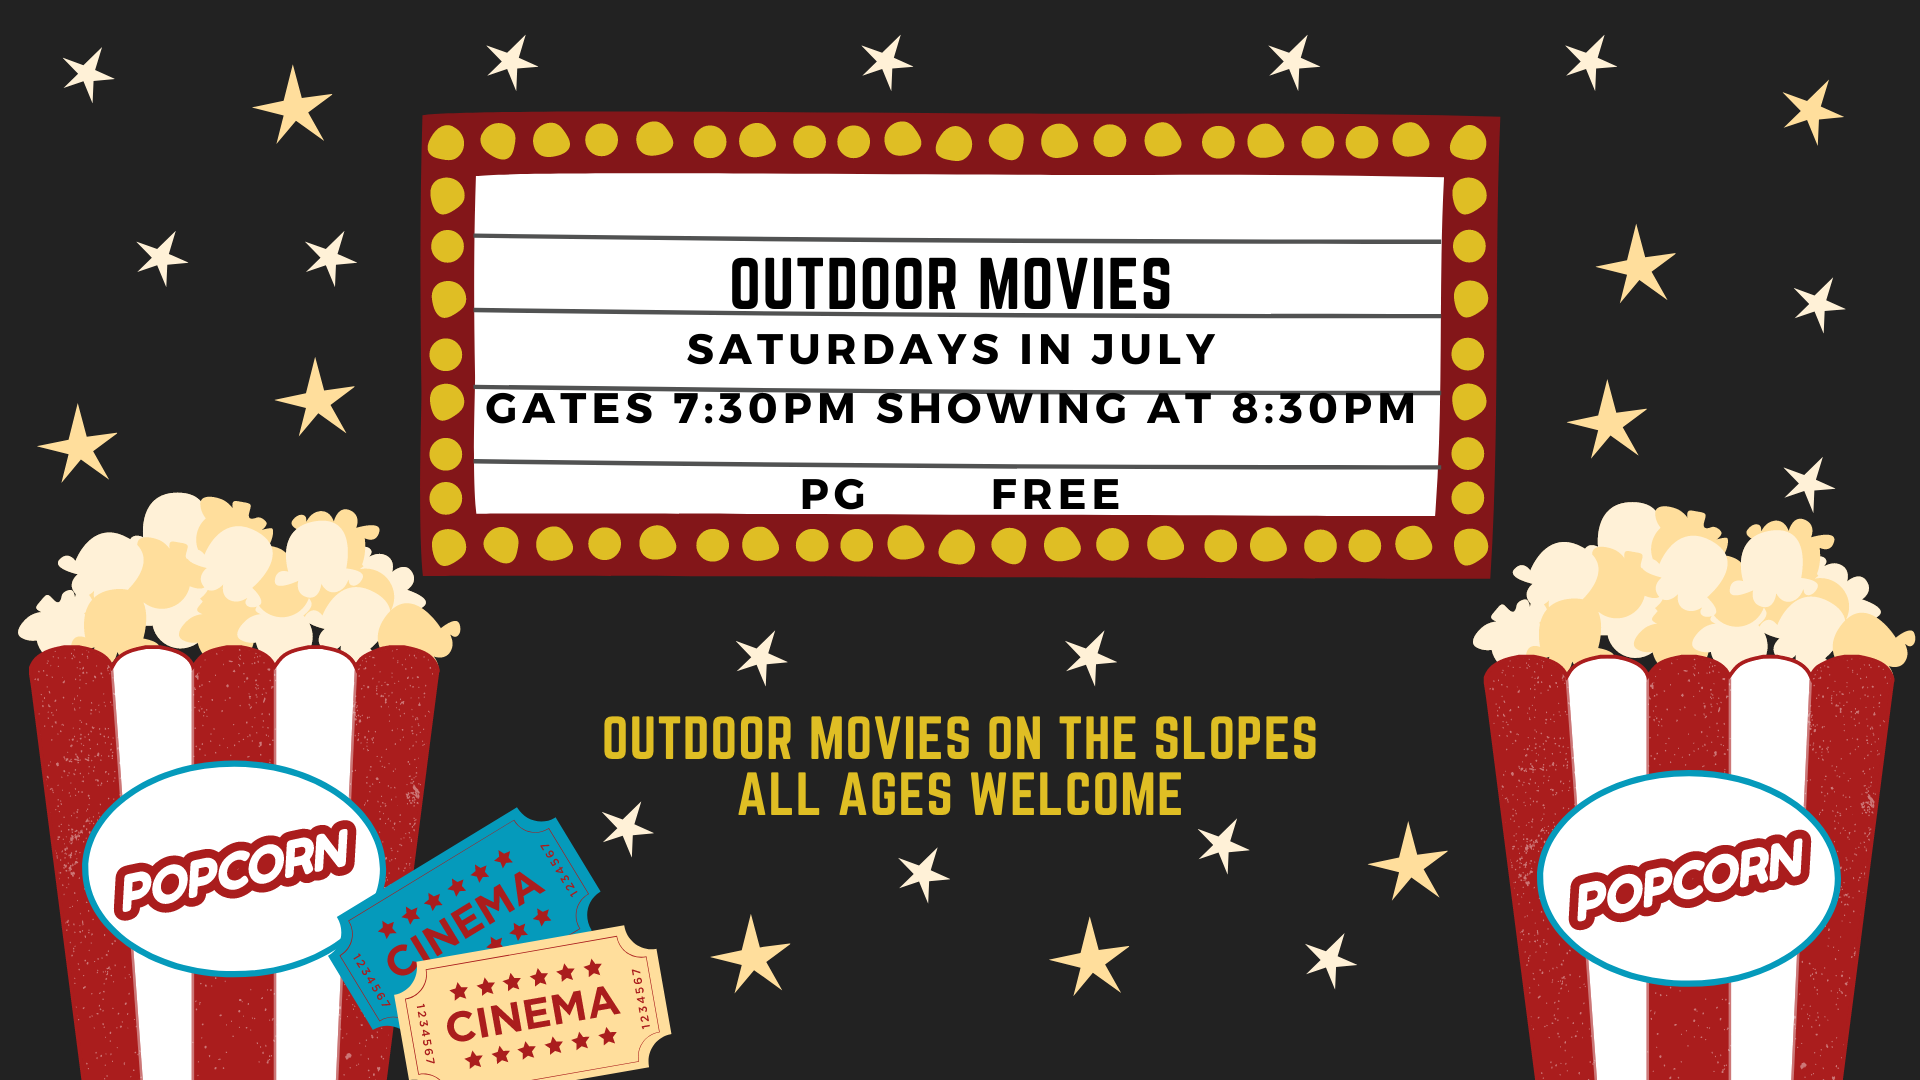 outdoor movie art for free movies under the stars